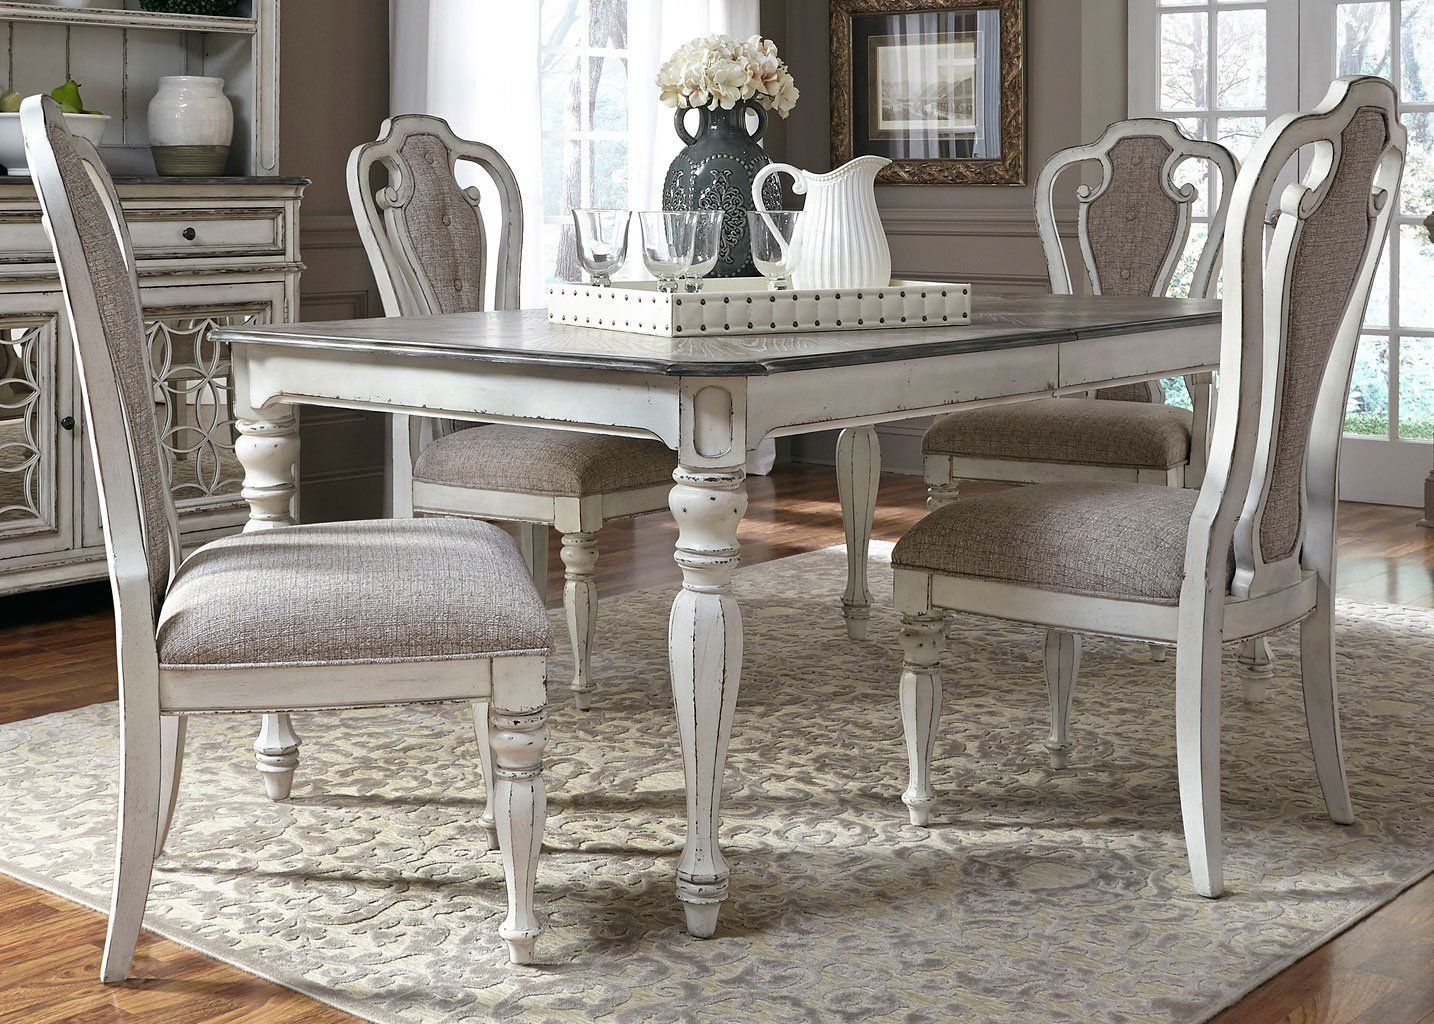 Magnolia Manor Dining Room Set W/ 90 Inch Table In 2019 | I Am Going In Newest Lamotte 5 Piece Dining Sets (Image 15 of 20)